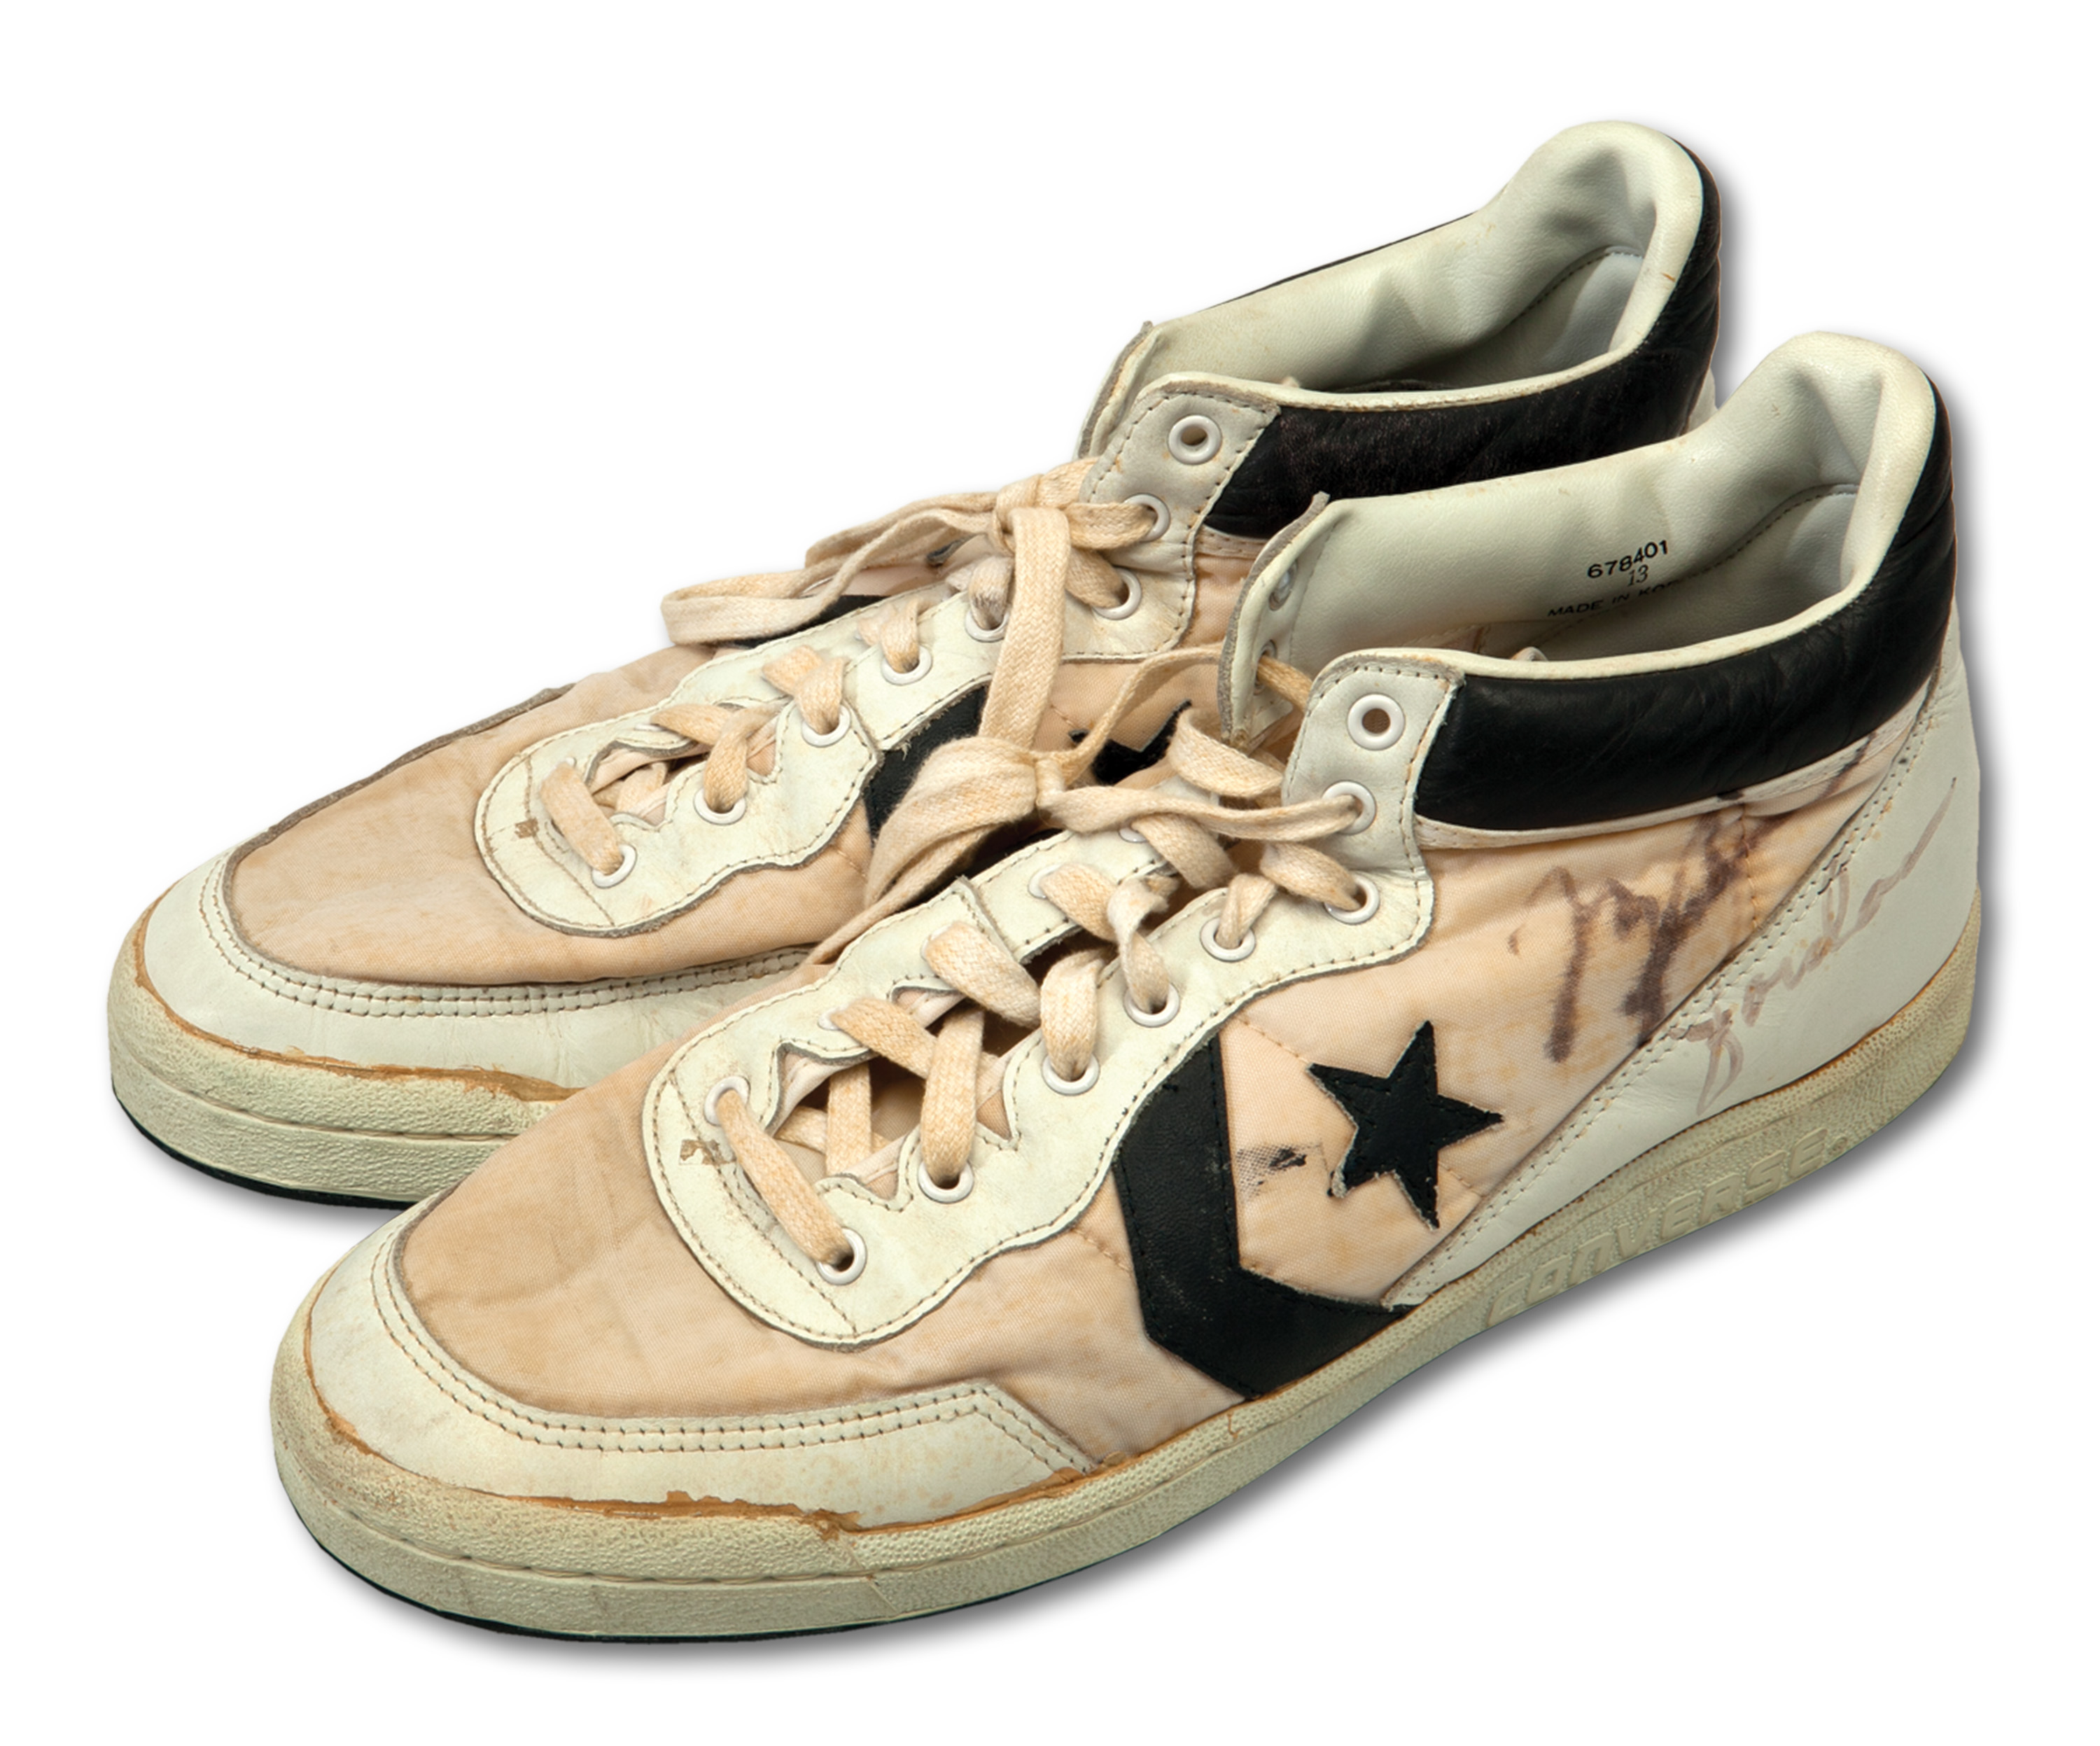 A pair of size 13 Converse sneakers that Michael Jordan wore during the 1984 Olympics, when the U.S.A. basketball team won the gold medal. He signed each sneaker.